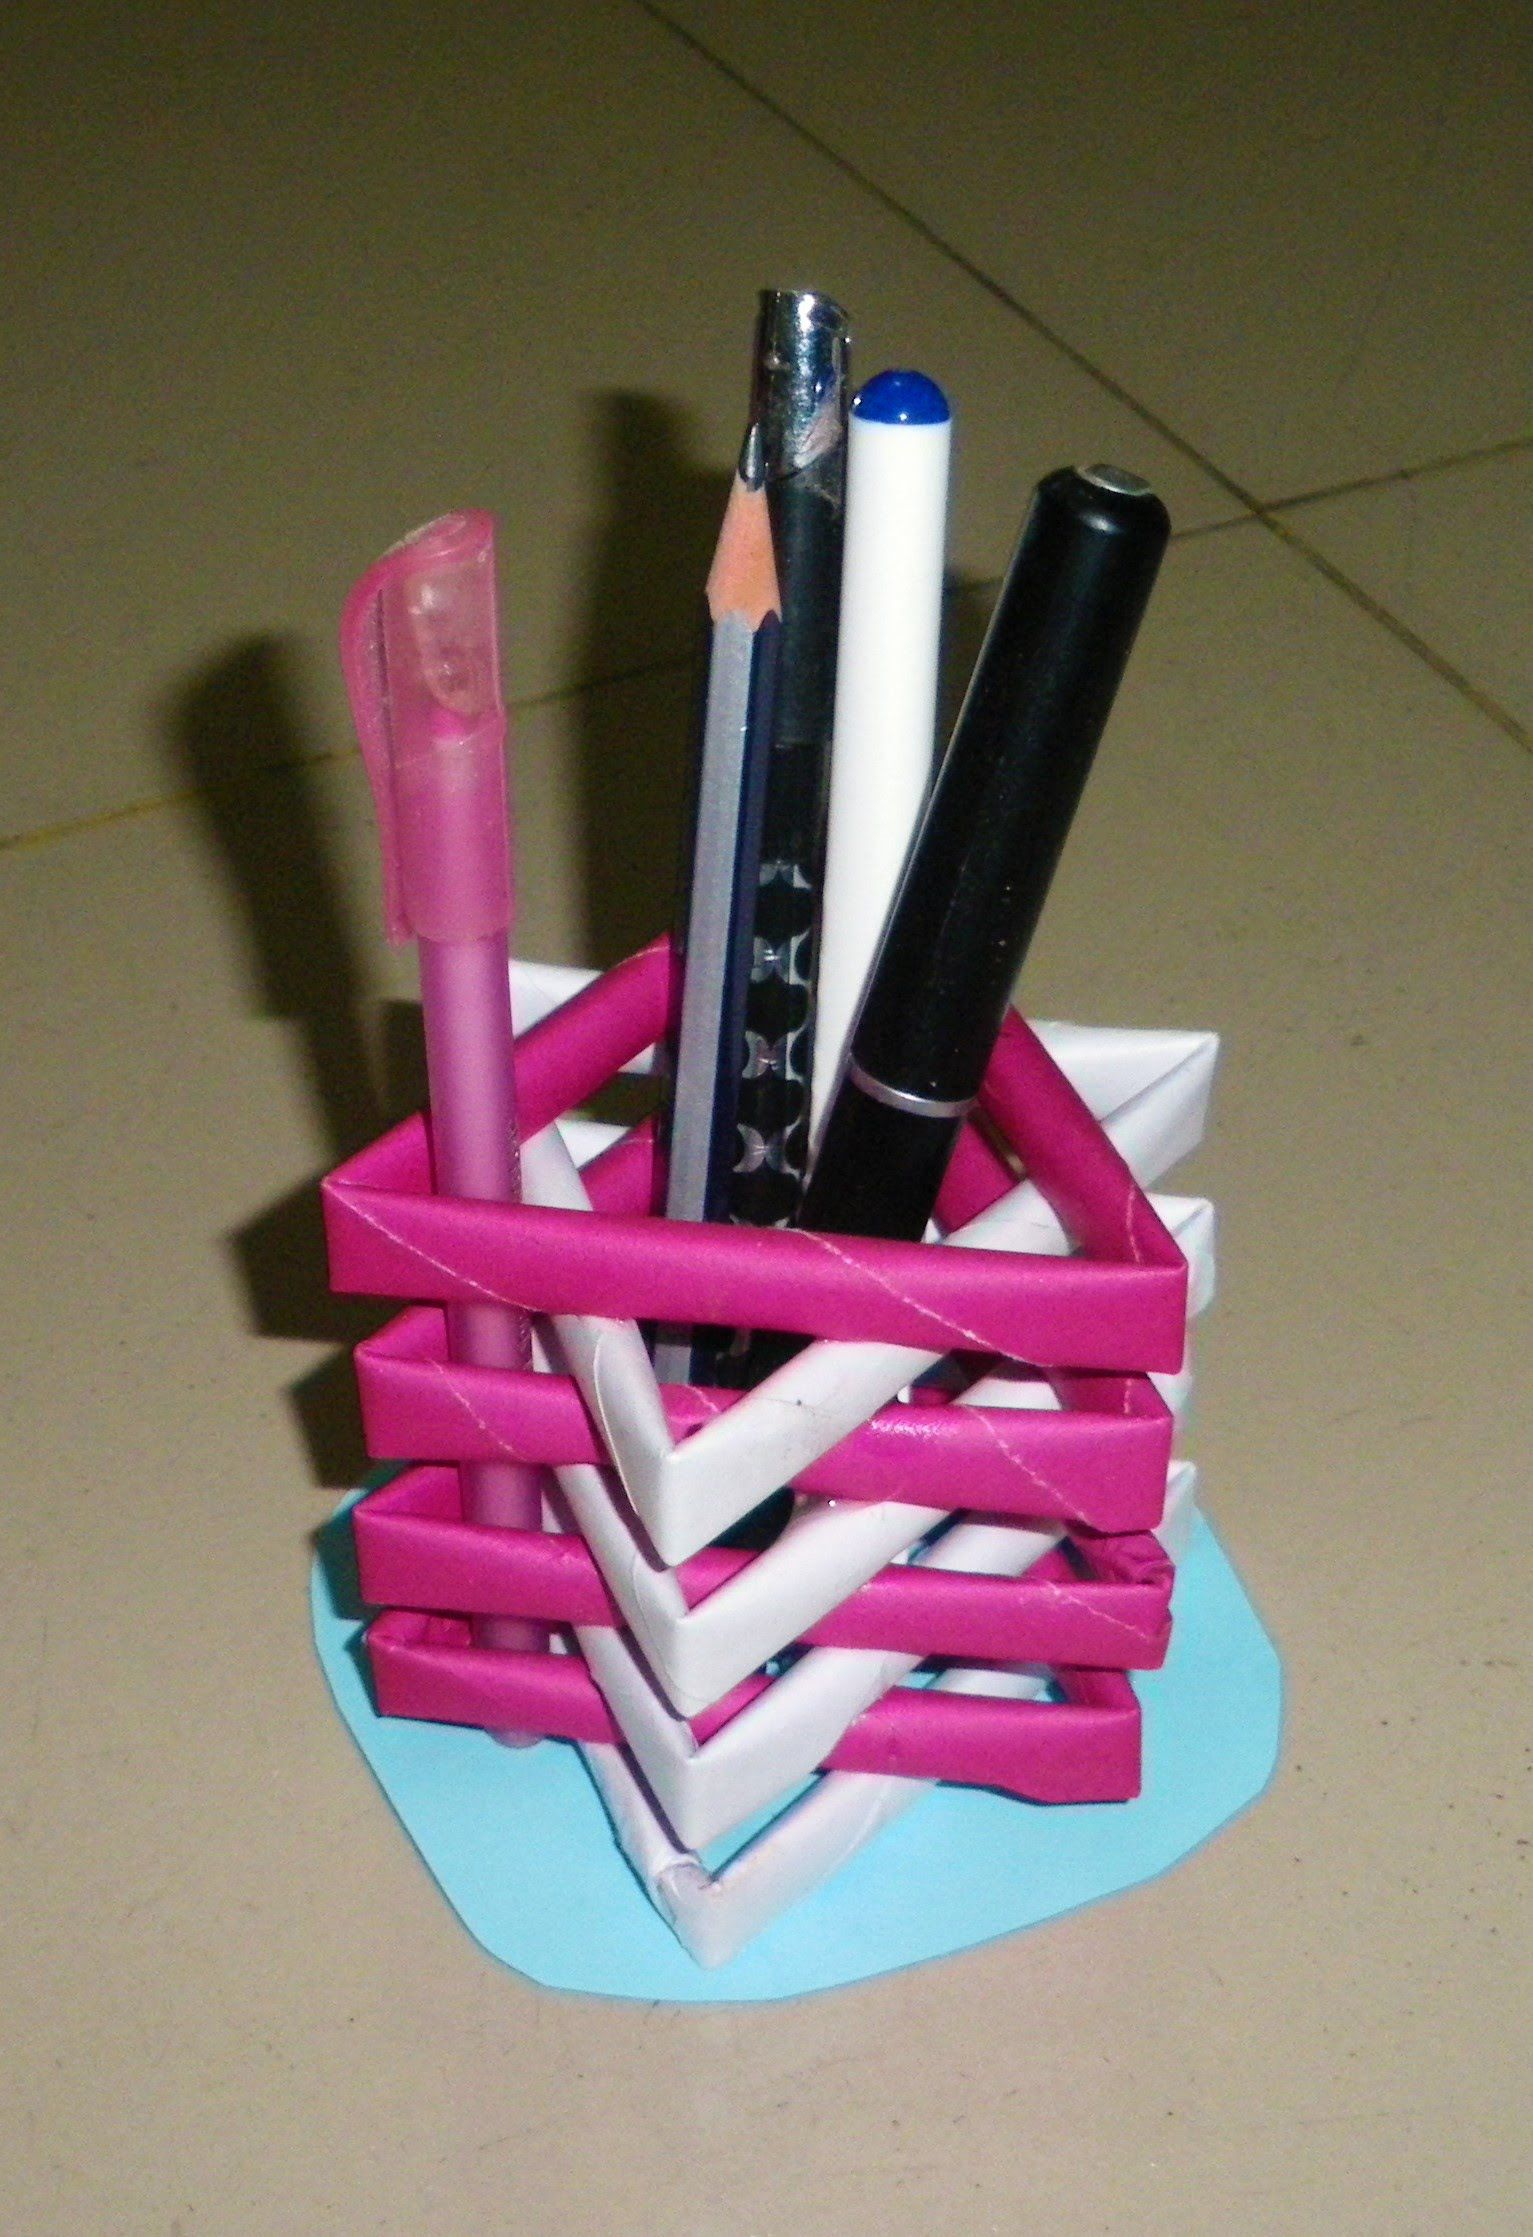 How To Make A Pen Stand From Waste Material